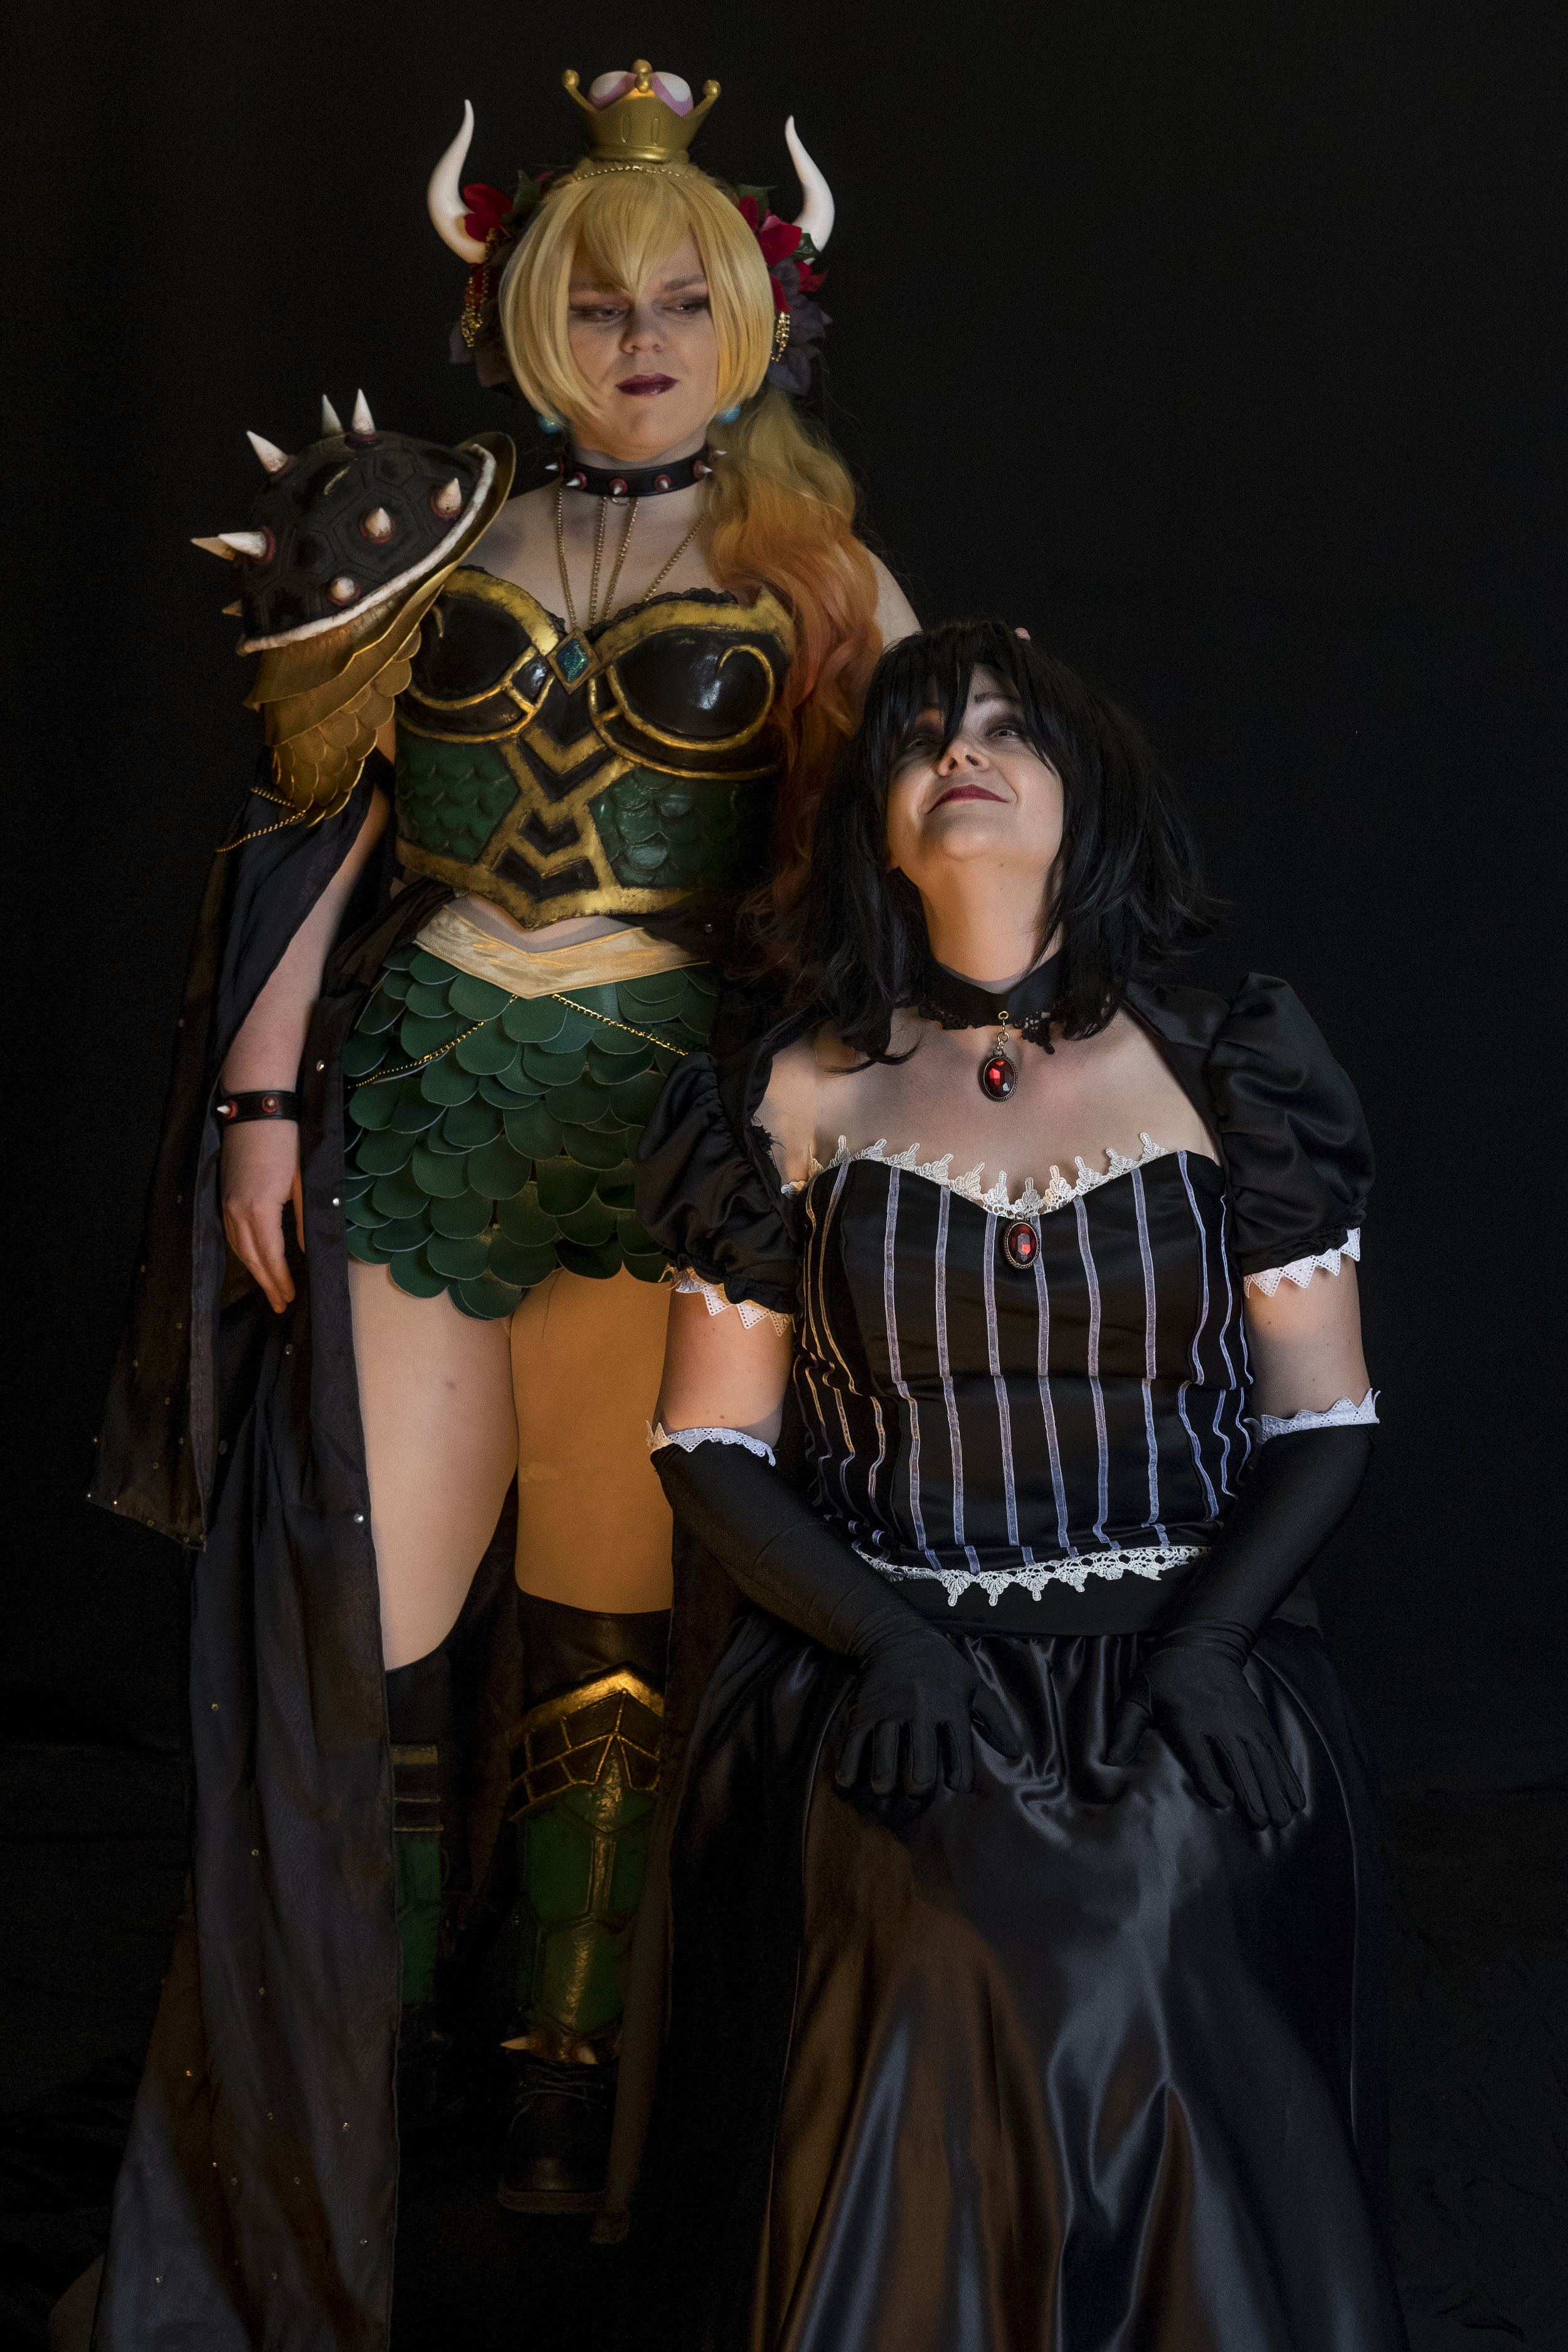 Tacocat Cosplay cosplaying as Hannah Alexander's Bowsette and Allybelle Cosplay cosplaying as Ann4rt's Chompette